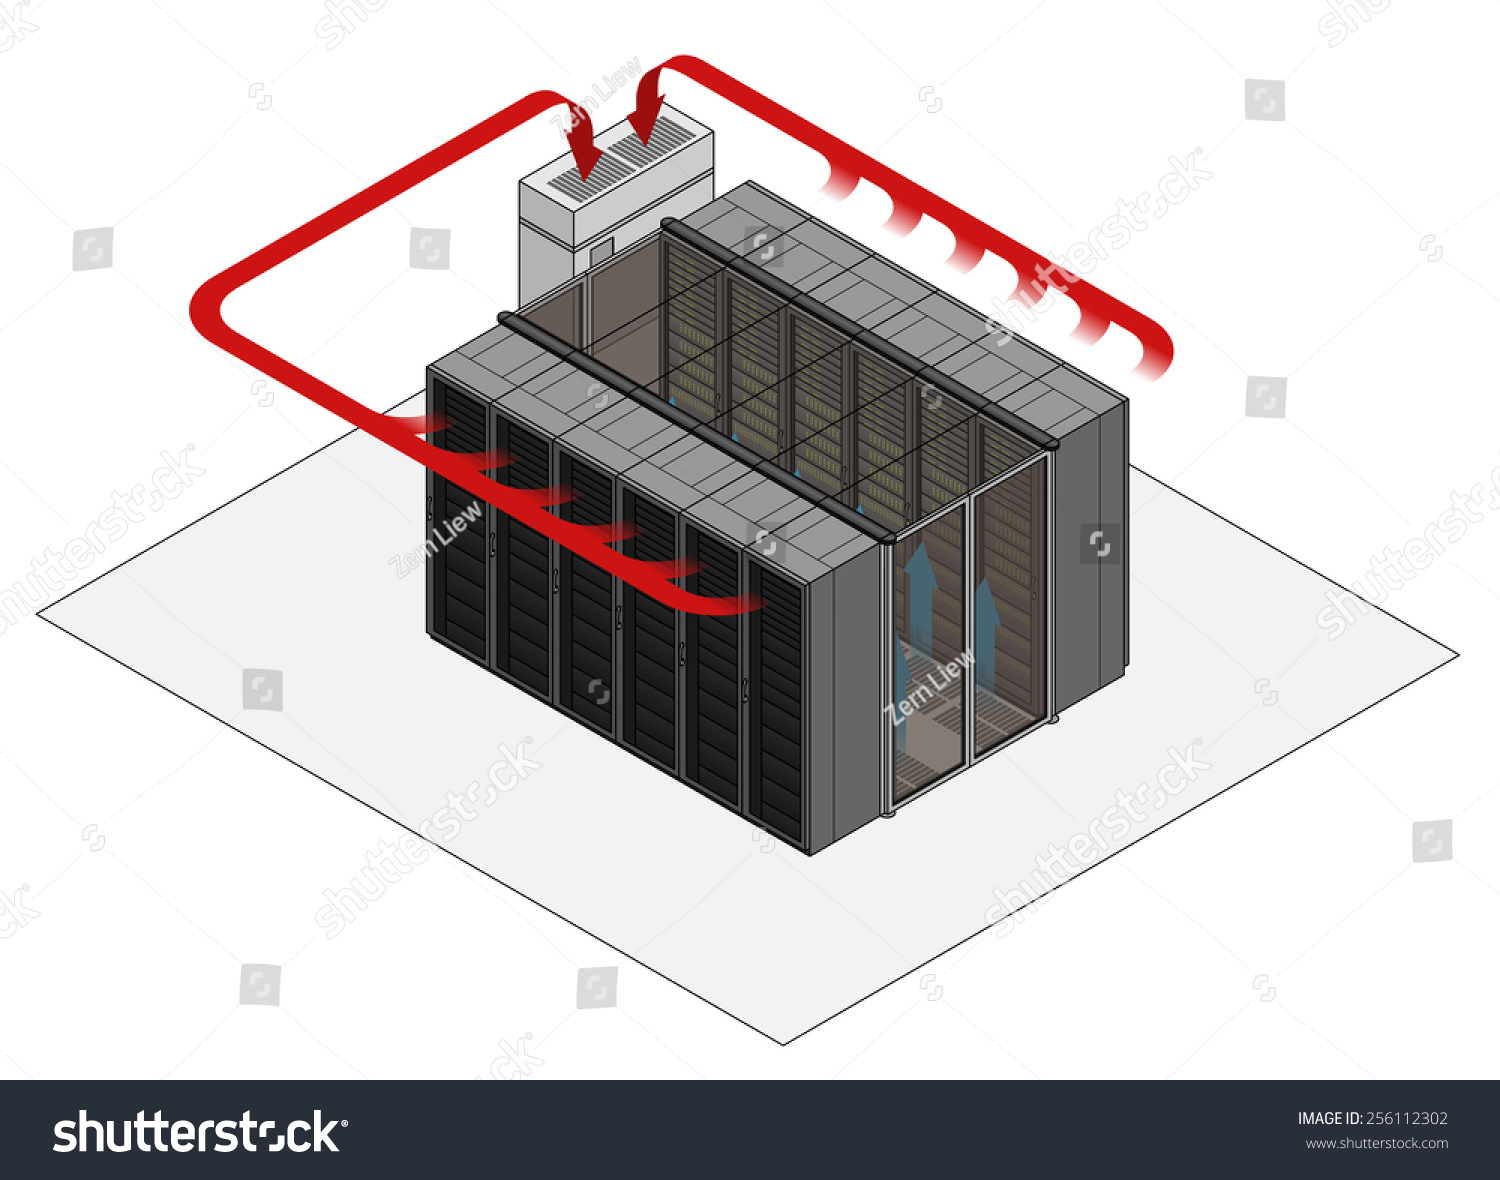 Data Center Hot Cold Aisle Rackcabinet Stock Vector (Royalty ... on raised wallpaper, creole cottage home plans, raised architecture, raised floor, luxury custom home plans, raised ranch, elevated home floor plans, raised pedestrian crossing, raised garden, raised garage, raised glass, raised gardening, raised creole cottage, small ranch home plans, raised hunting, cabin cottage plans, allison ramsey cottage plans, raised kitchen, home addition floor plans, raised signs,